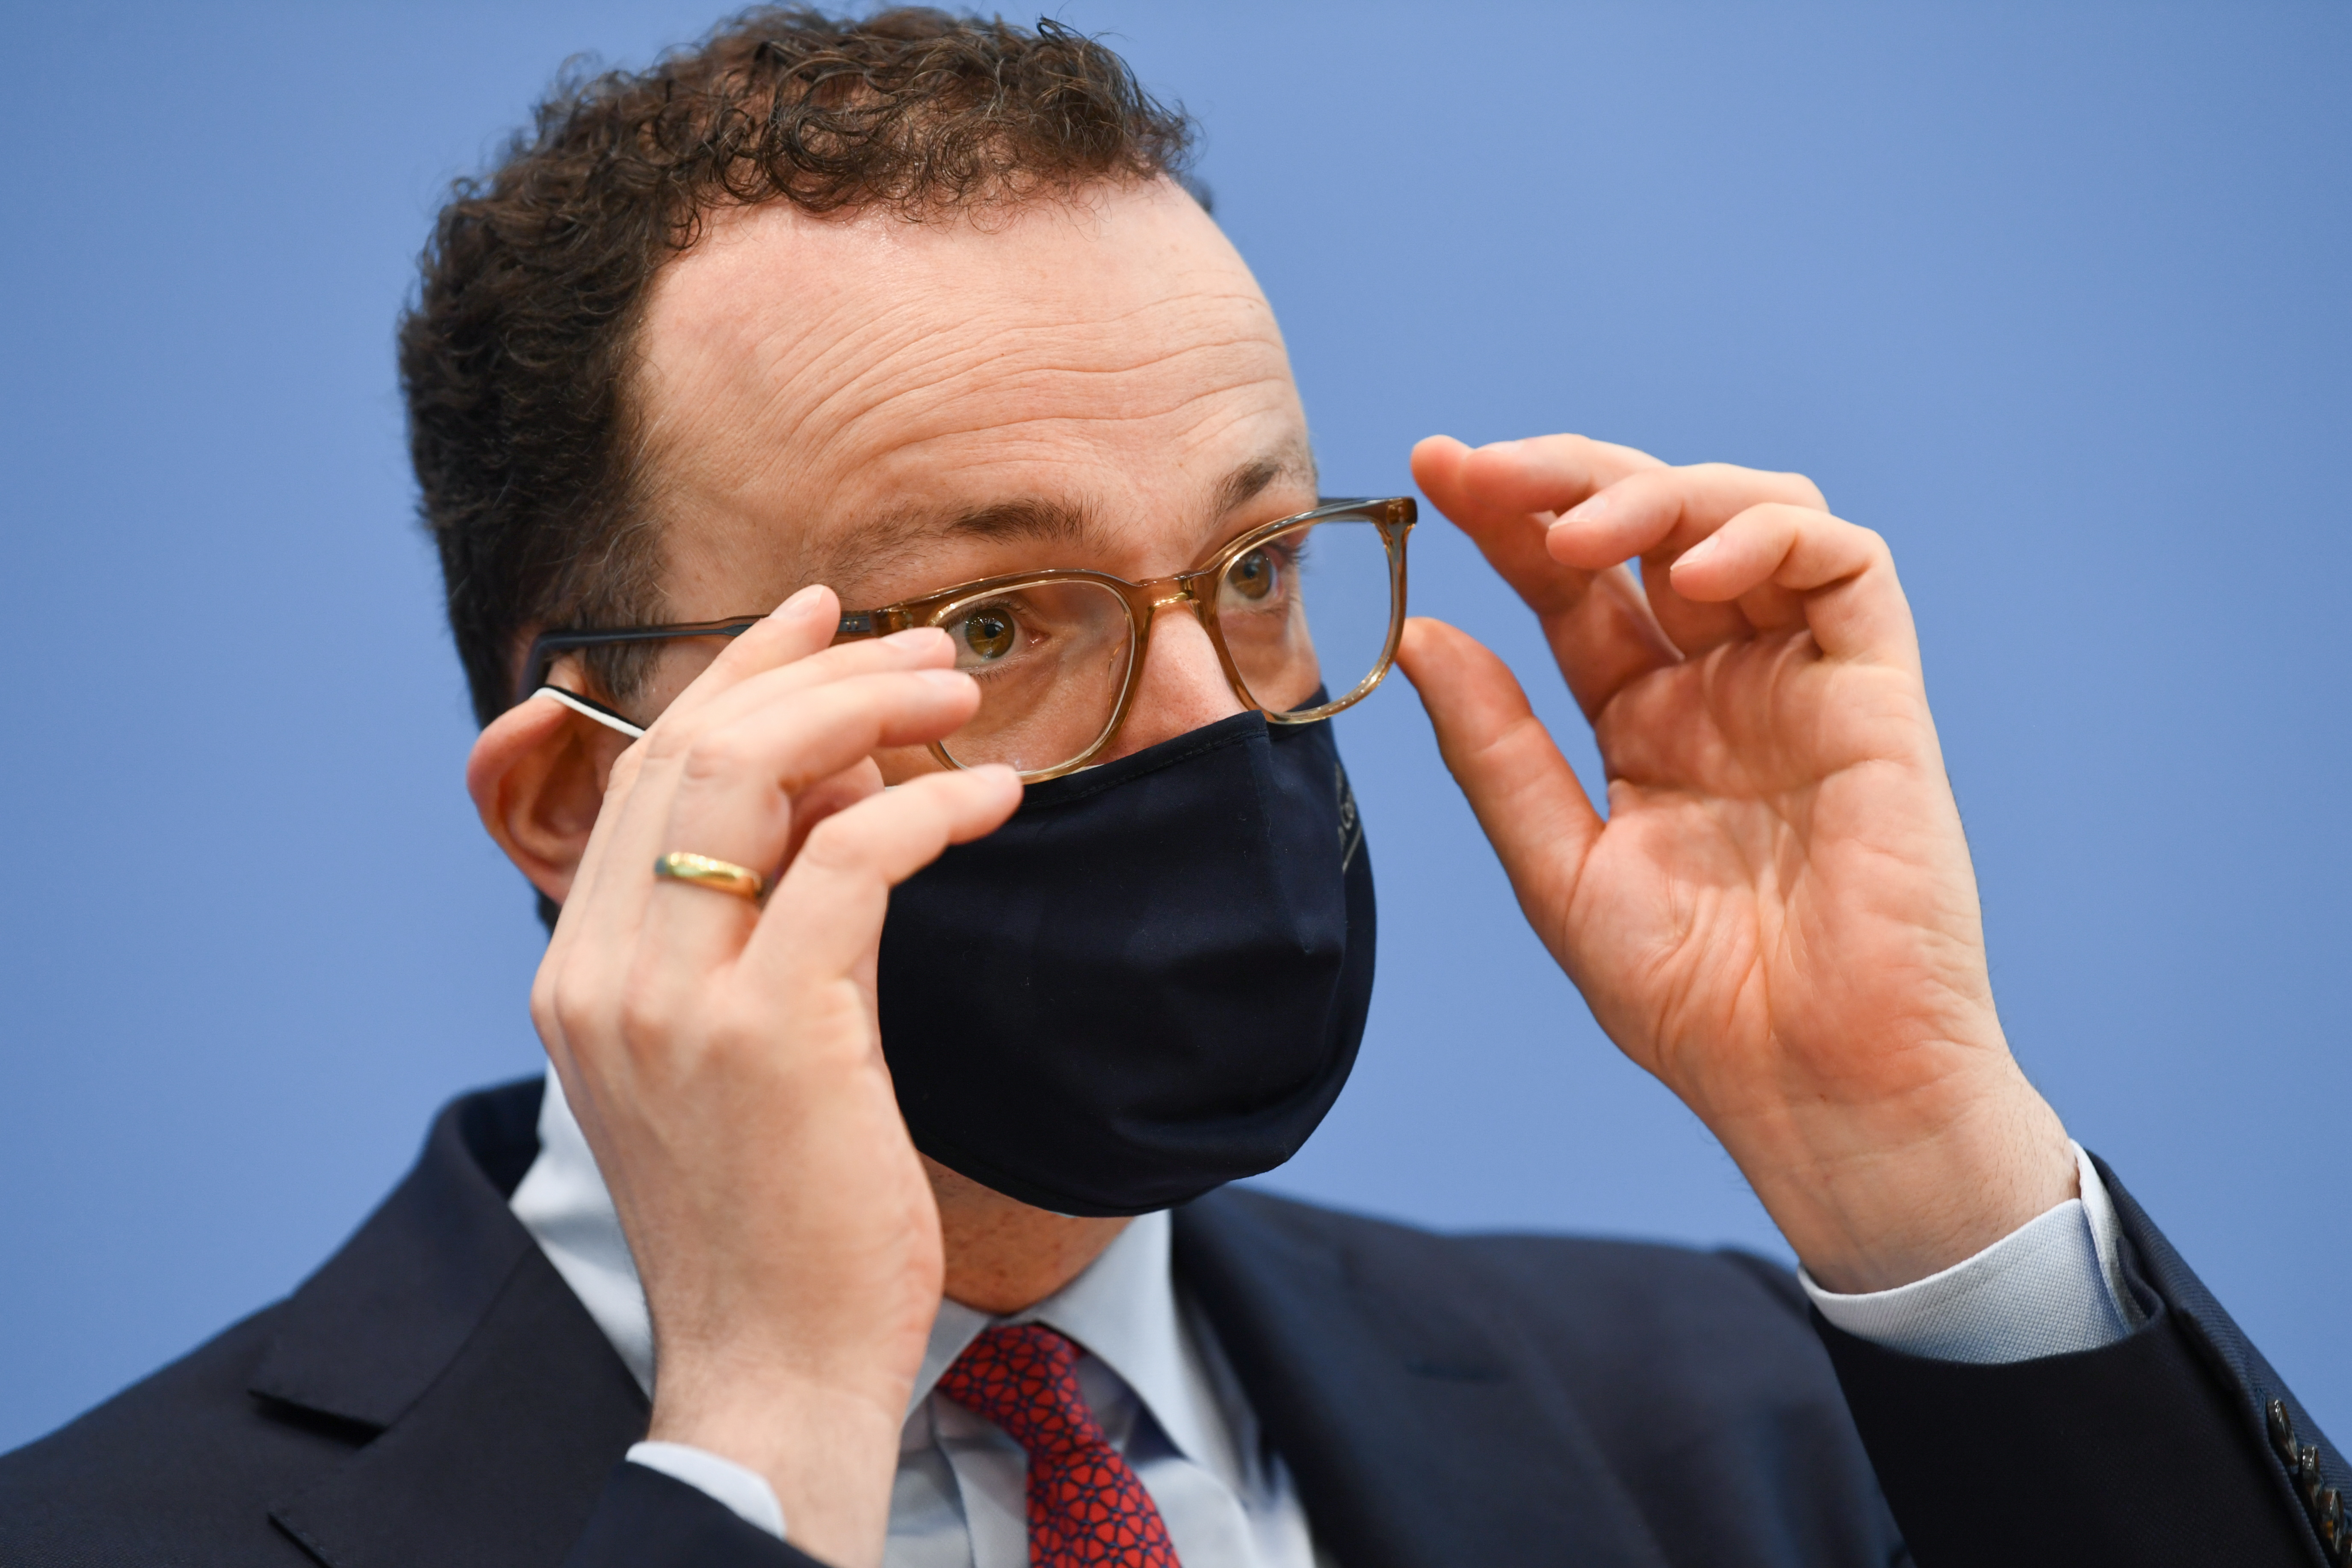 German Health Minister Jens Spahn adjusts his glasses during a news conference regarding the start of the coronavirus disease (COVID-19) vaccination process at general practices, in Berlin, Germany, April 1, 2021.  REUTERS/Annegret Hilse/Pool